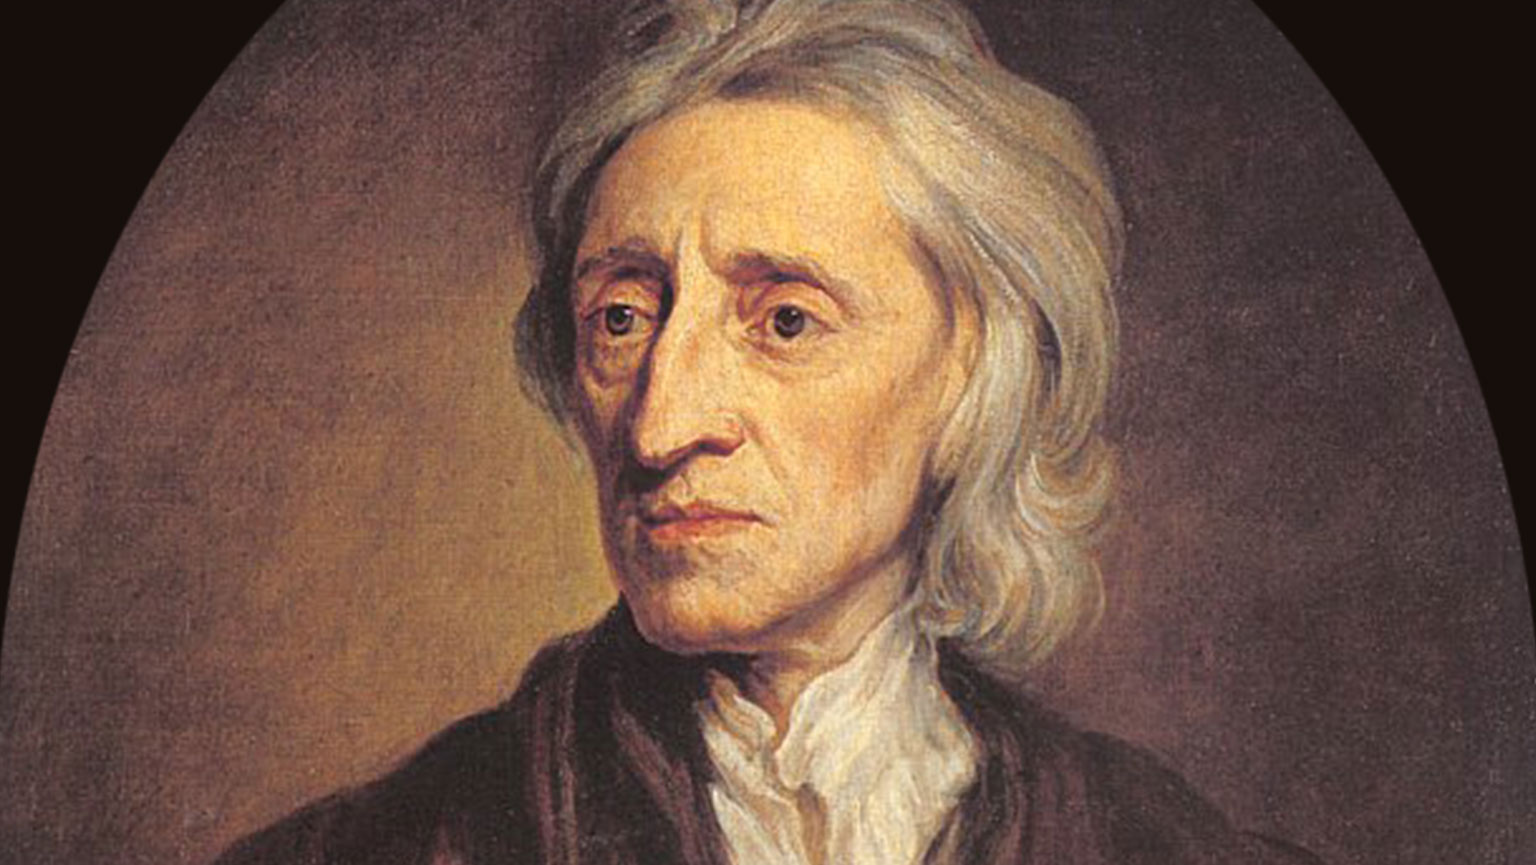 Locke on Limited Government and Toleration